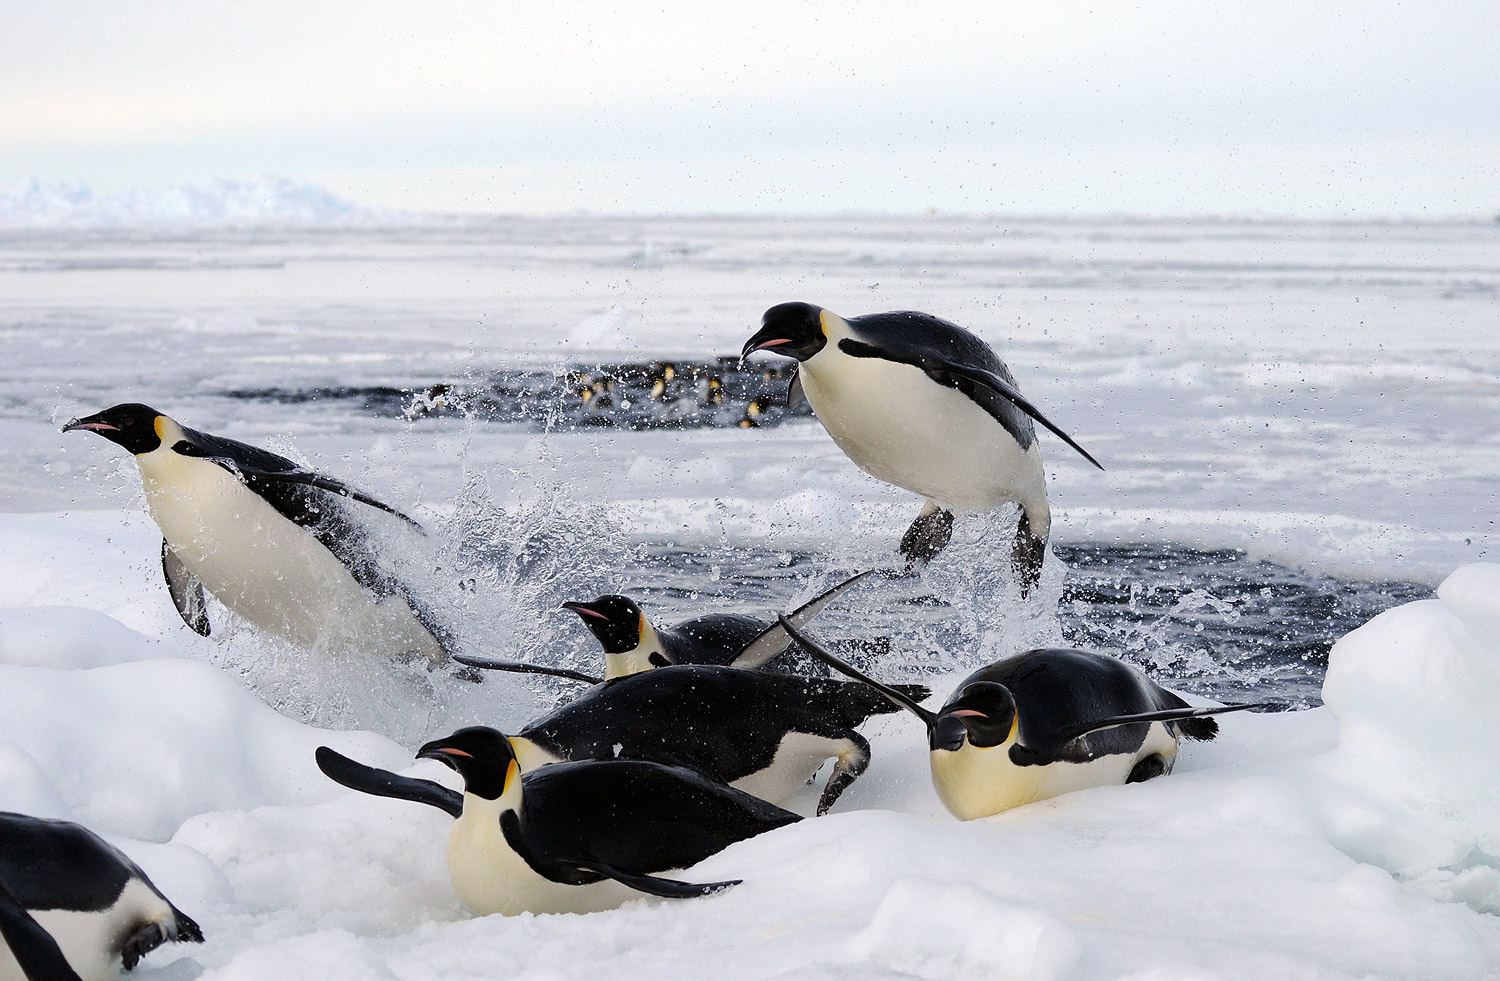 Emperor penguins returning from a fishing dive